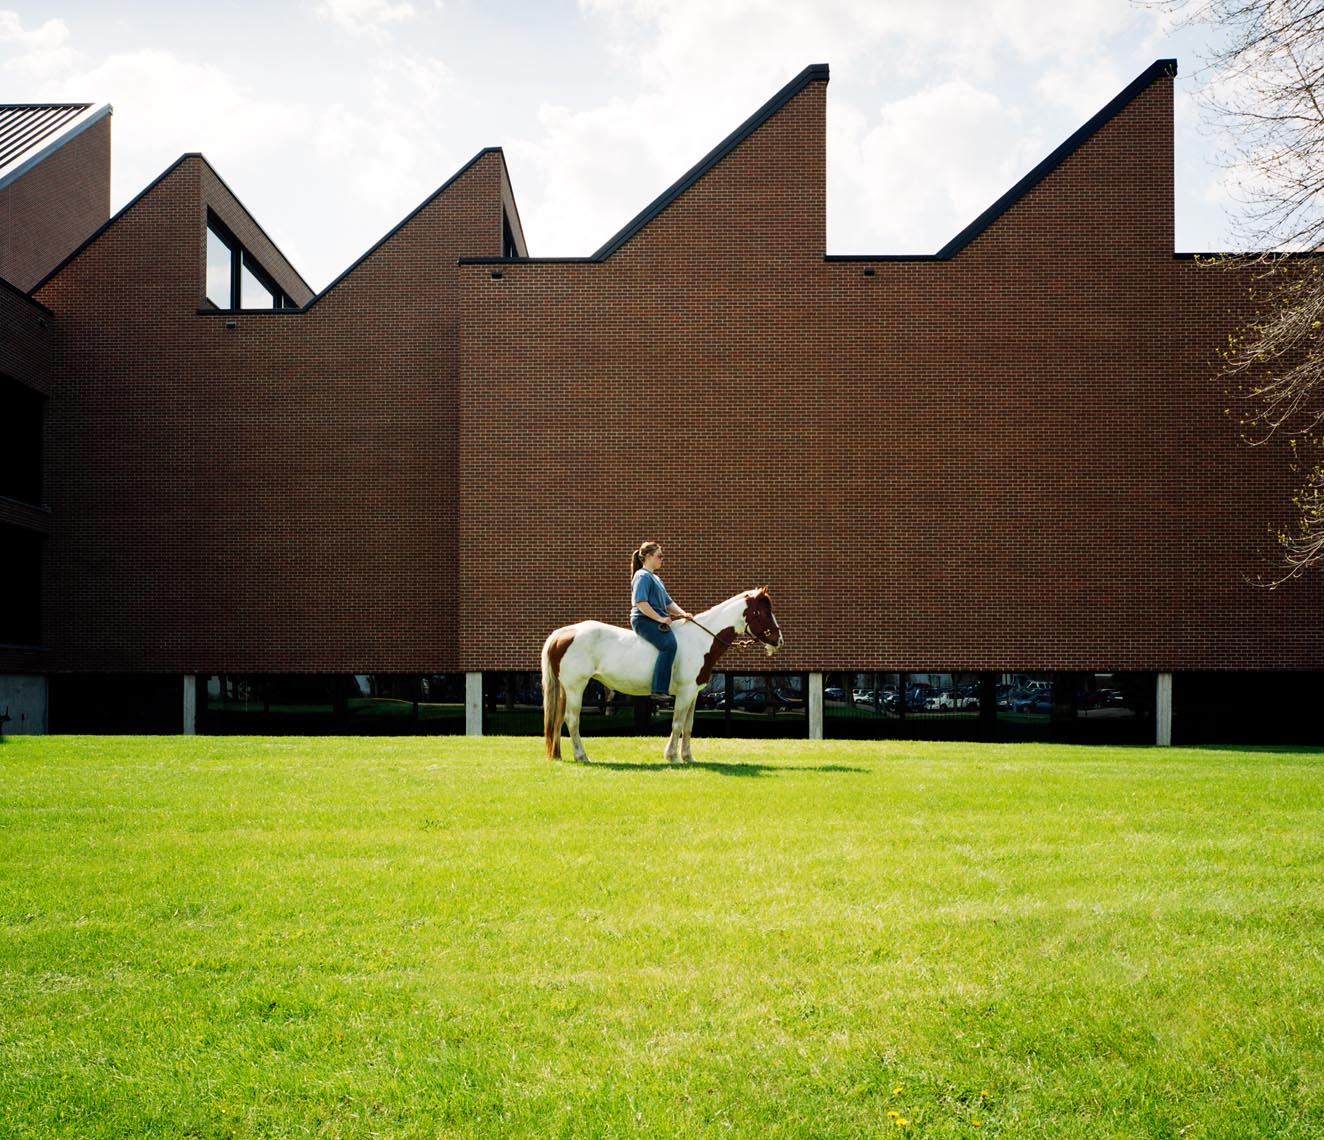 College student with horse on campus portrait